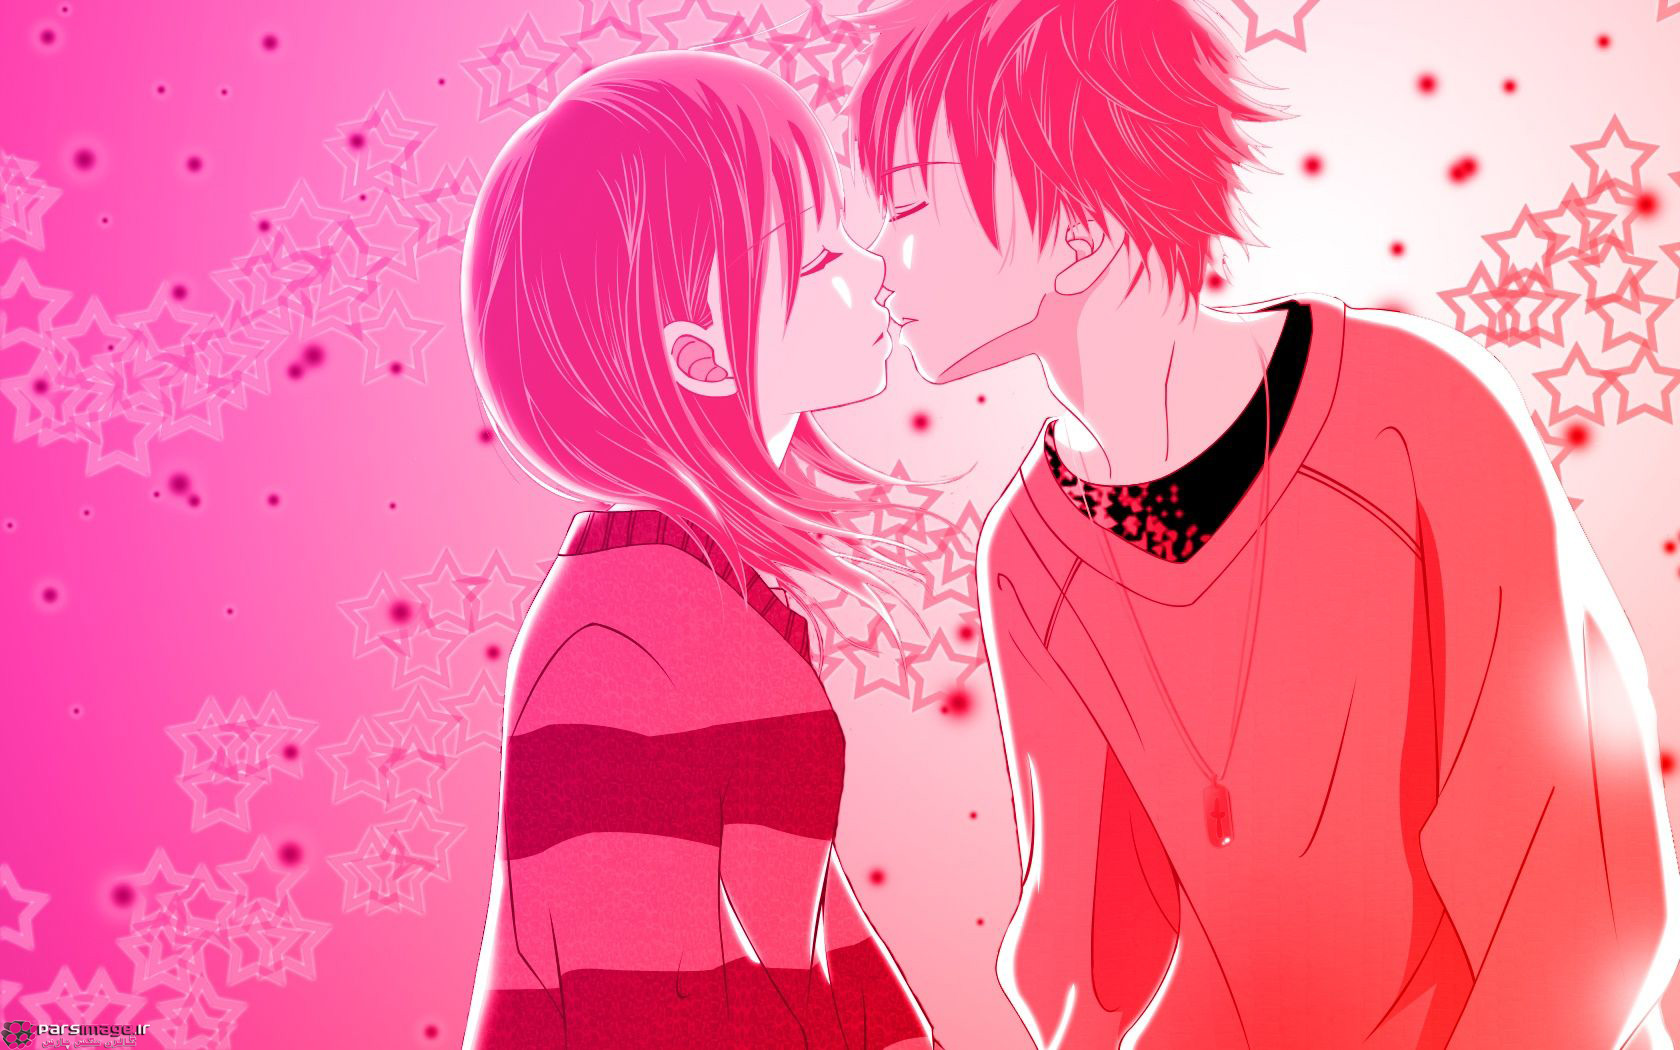 Love Wallpaper For Man : Anime couple Valentine s Day - msyugioh123 Photo (33215037 ...